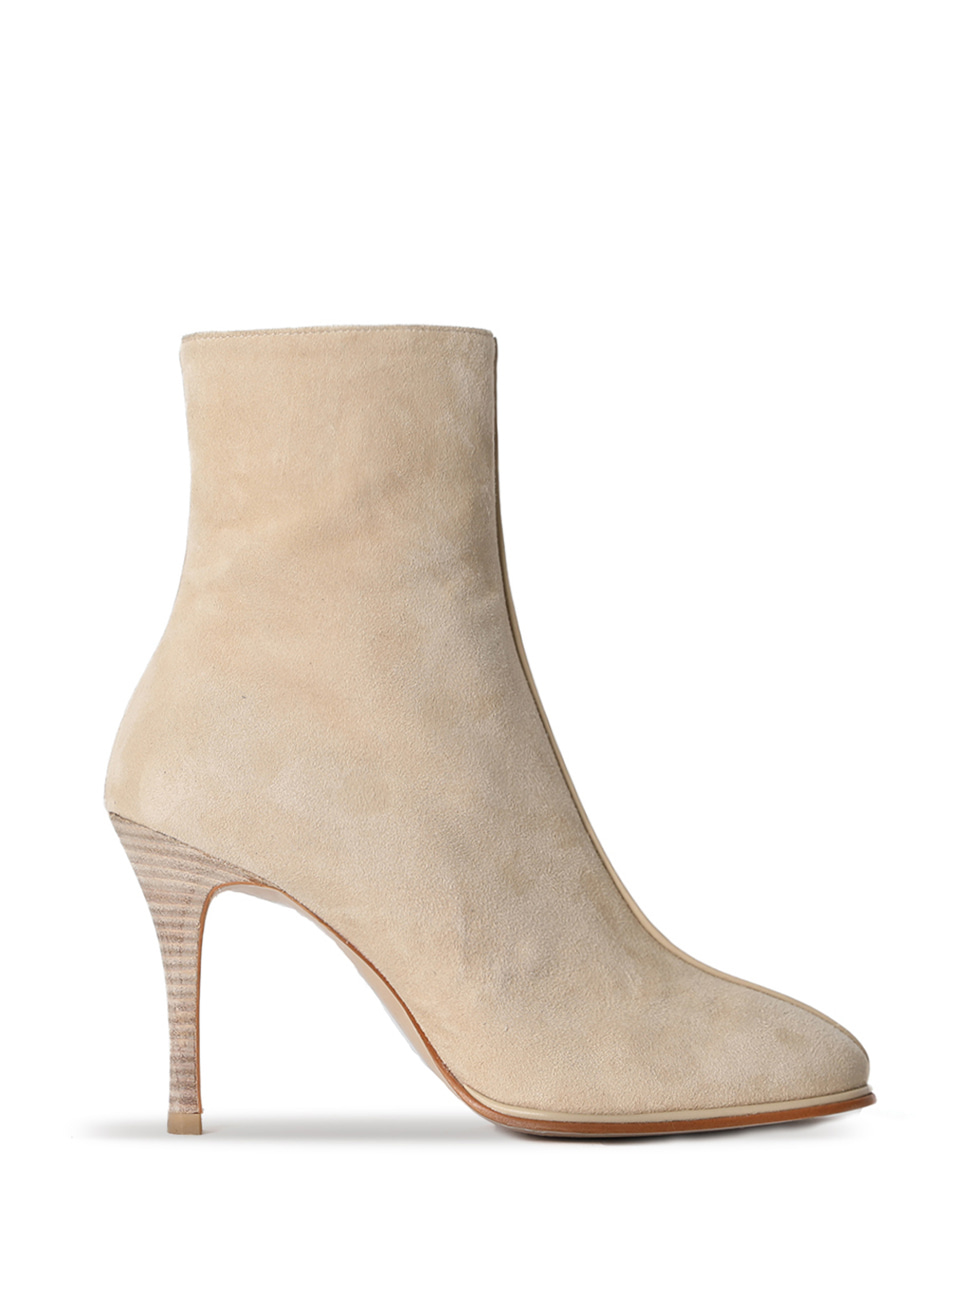 TEATIME SUEDE ANKLE BOOTS - BEIGE